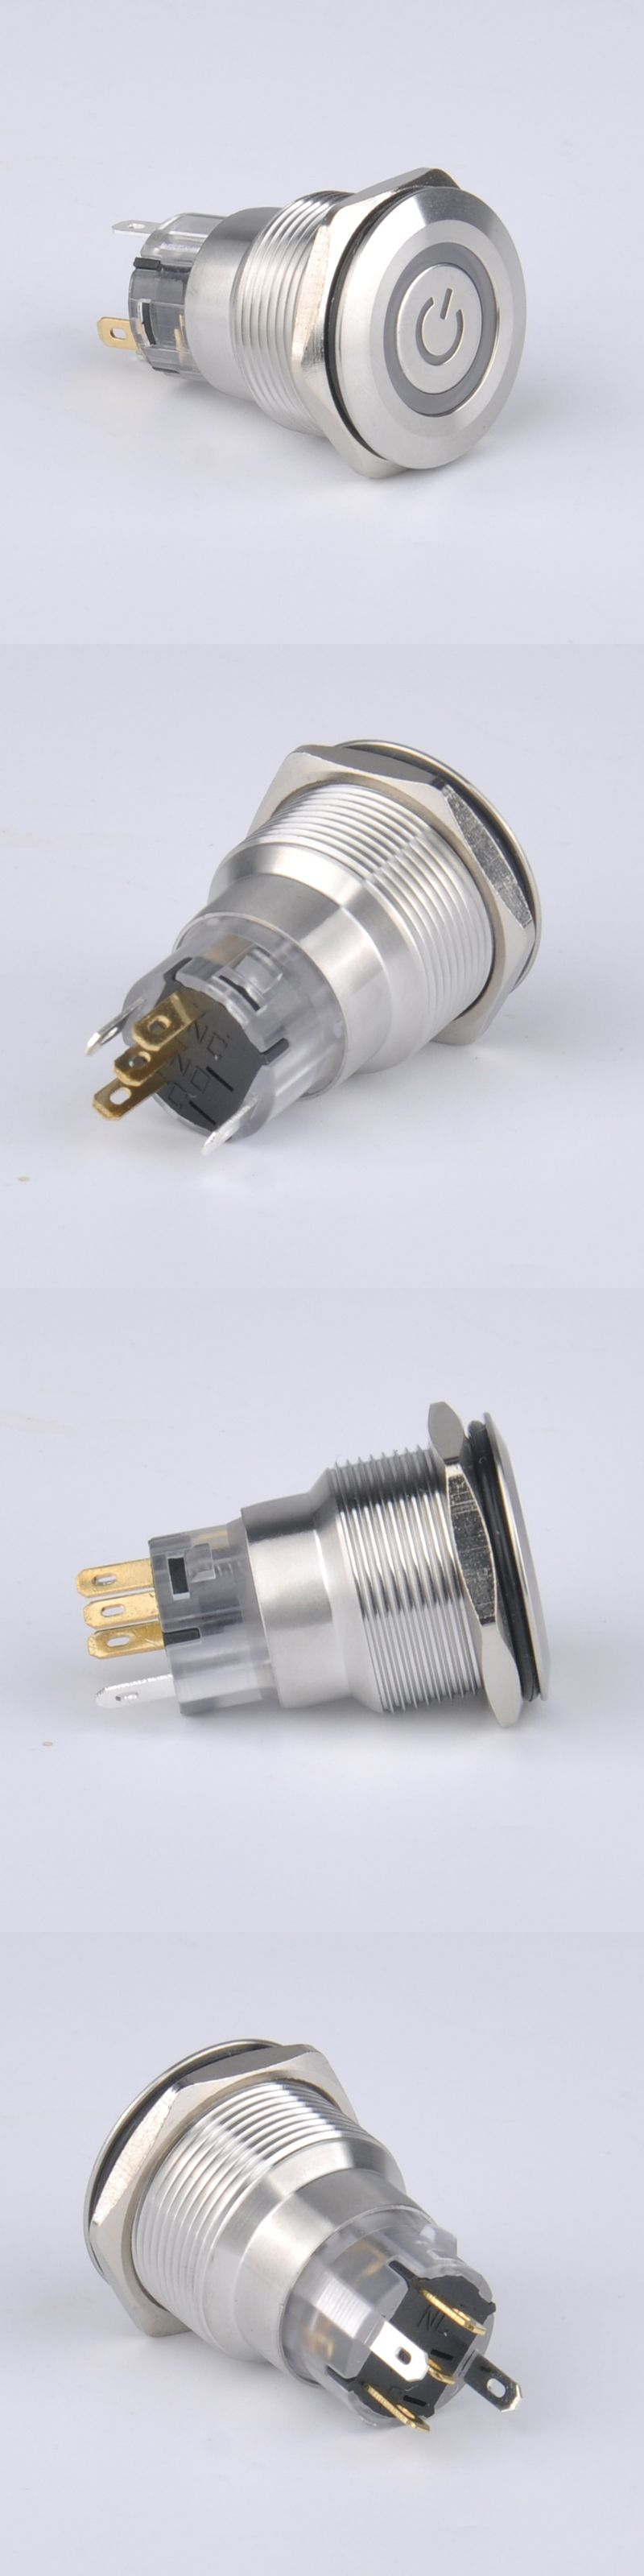 5pcs Metal Stainless Steel Pushbutton Switch With Housing Socket Is Using A To Power Ignition And Momentary Start Latching Function Ring Led